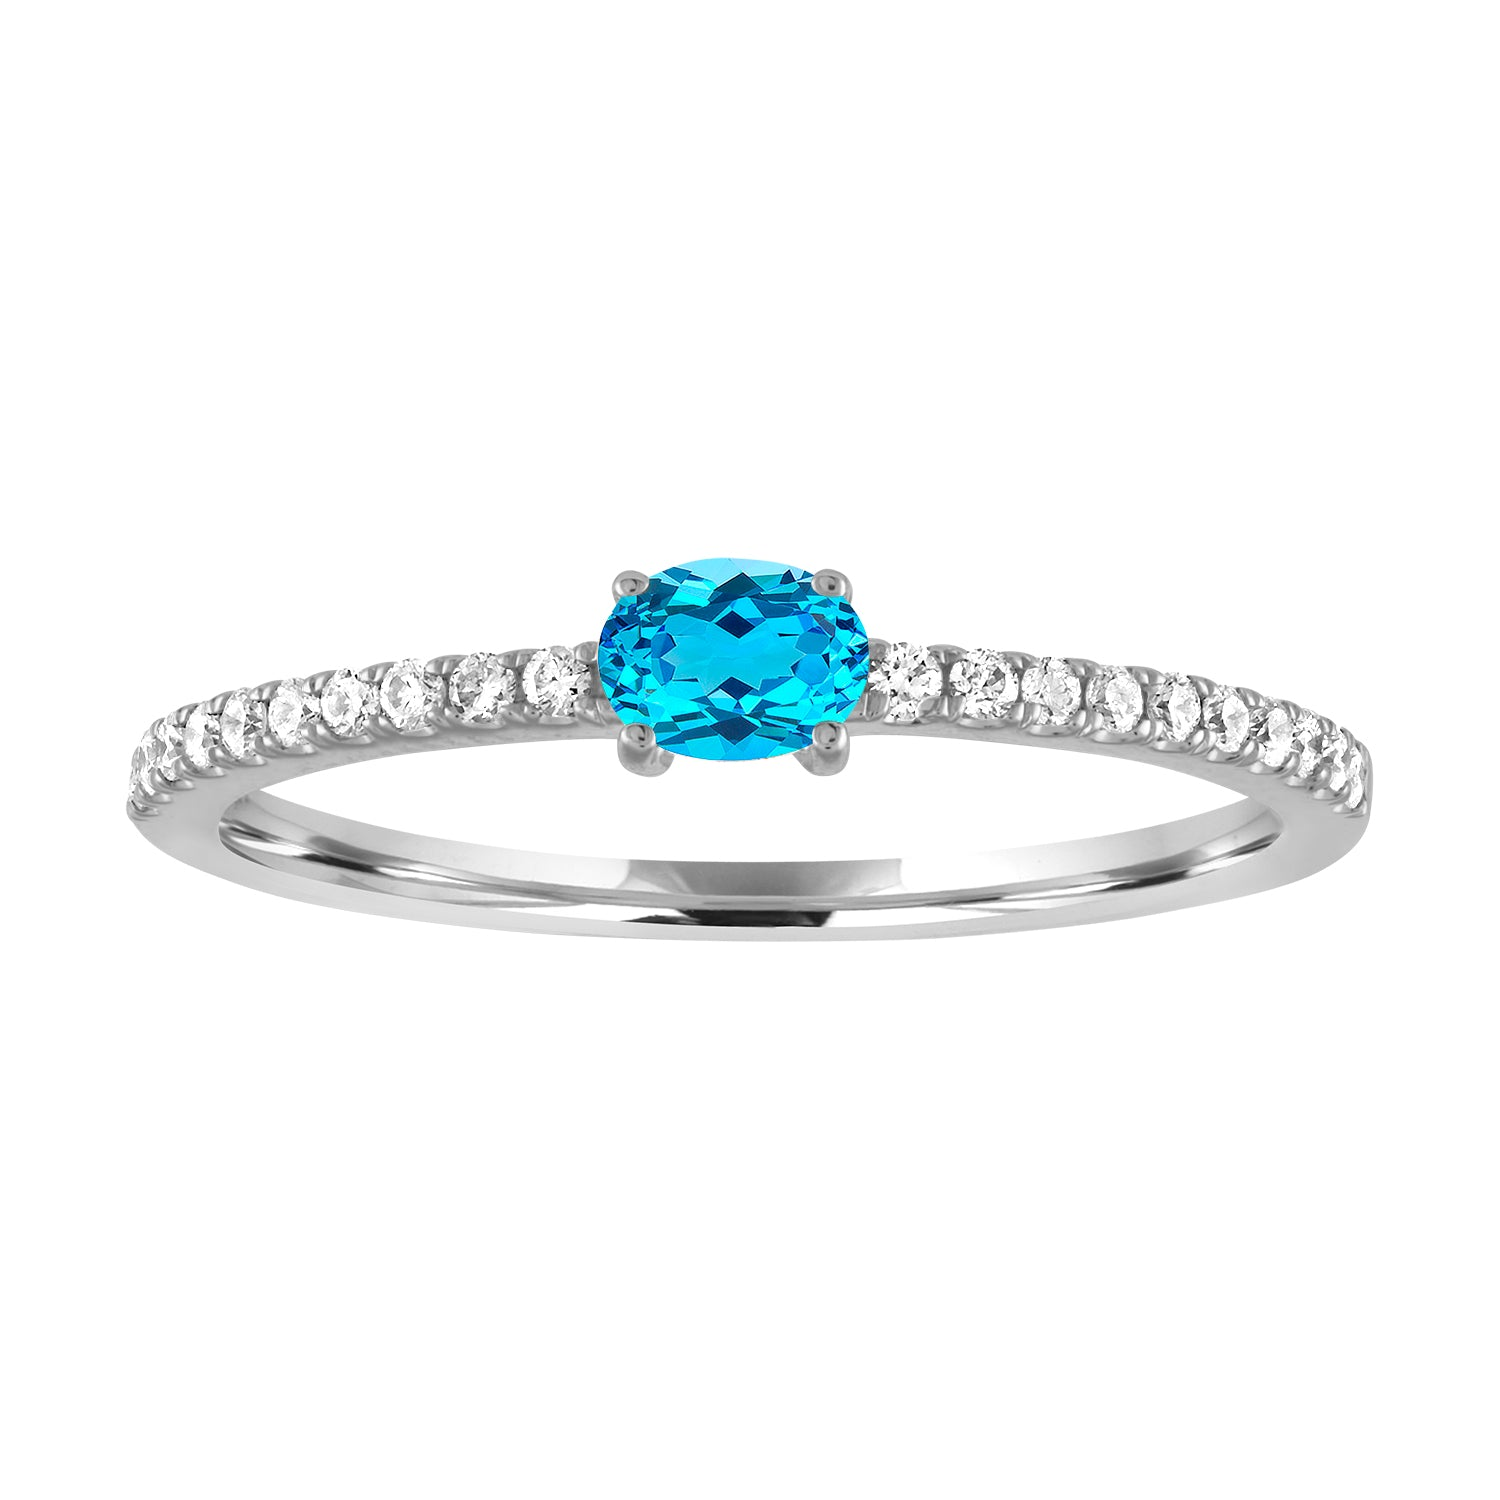 Micropave band with horizontal oval blue topaz center